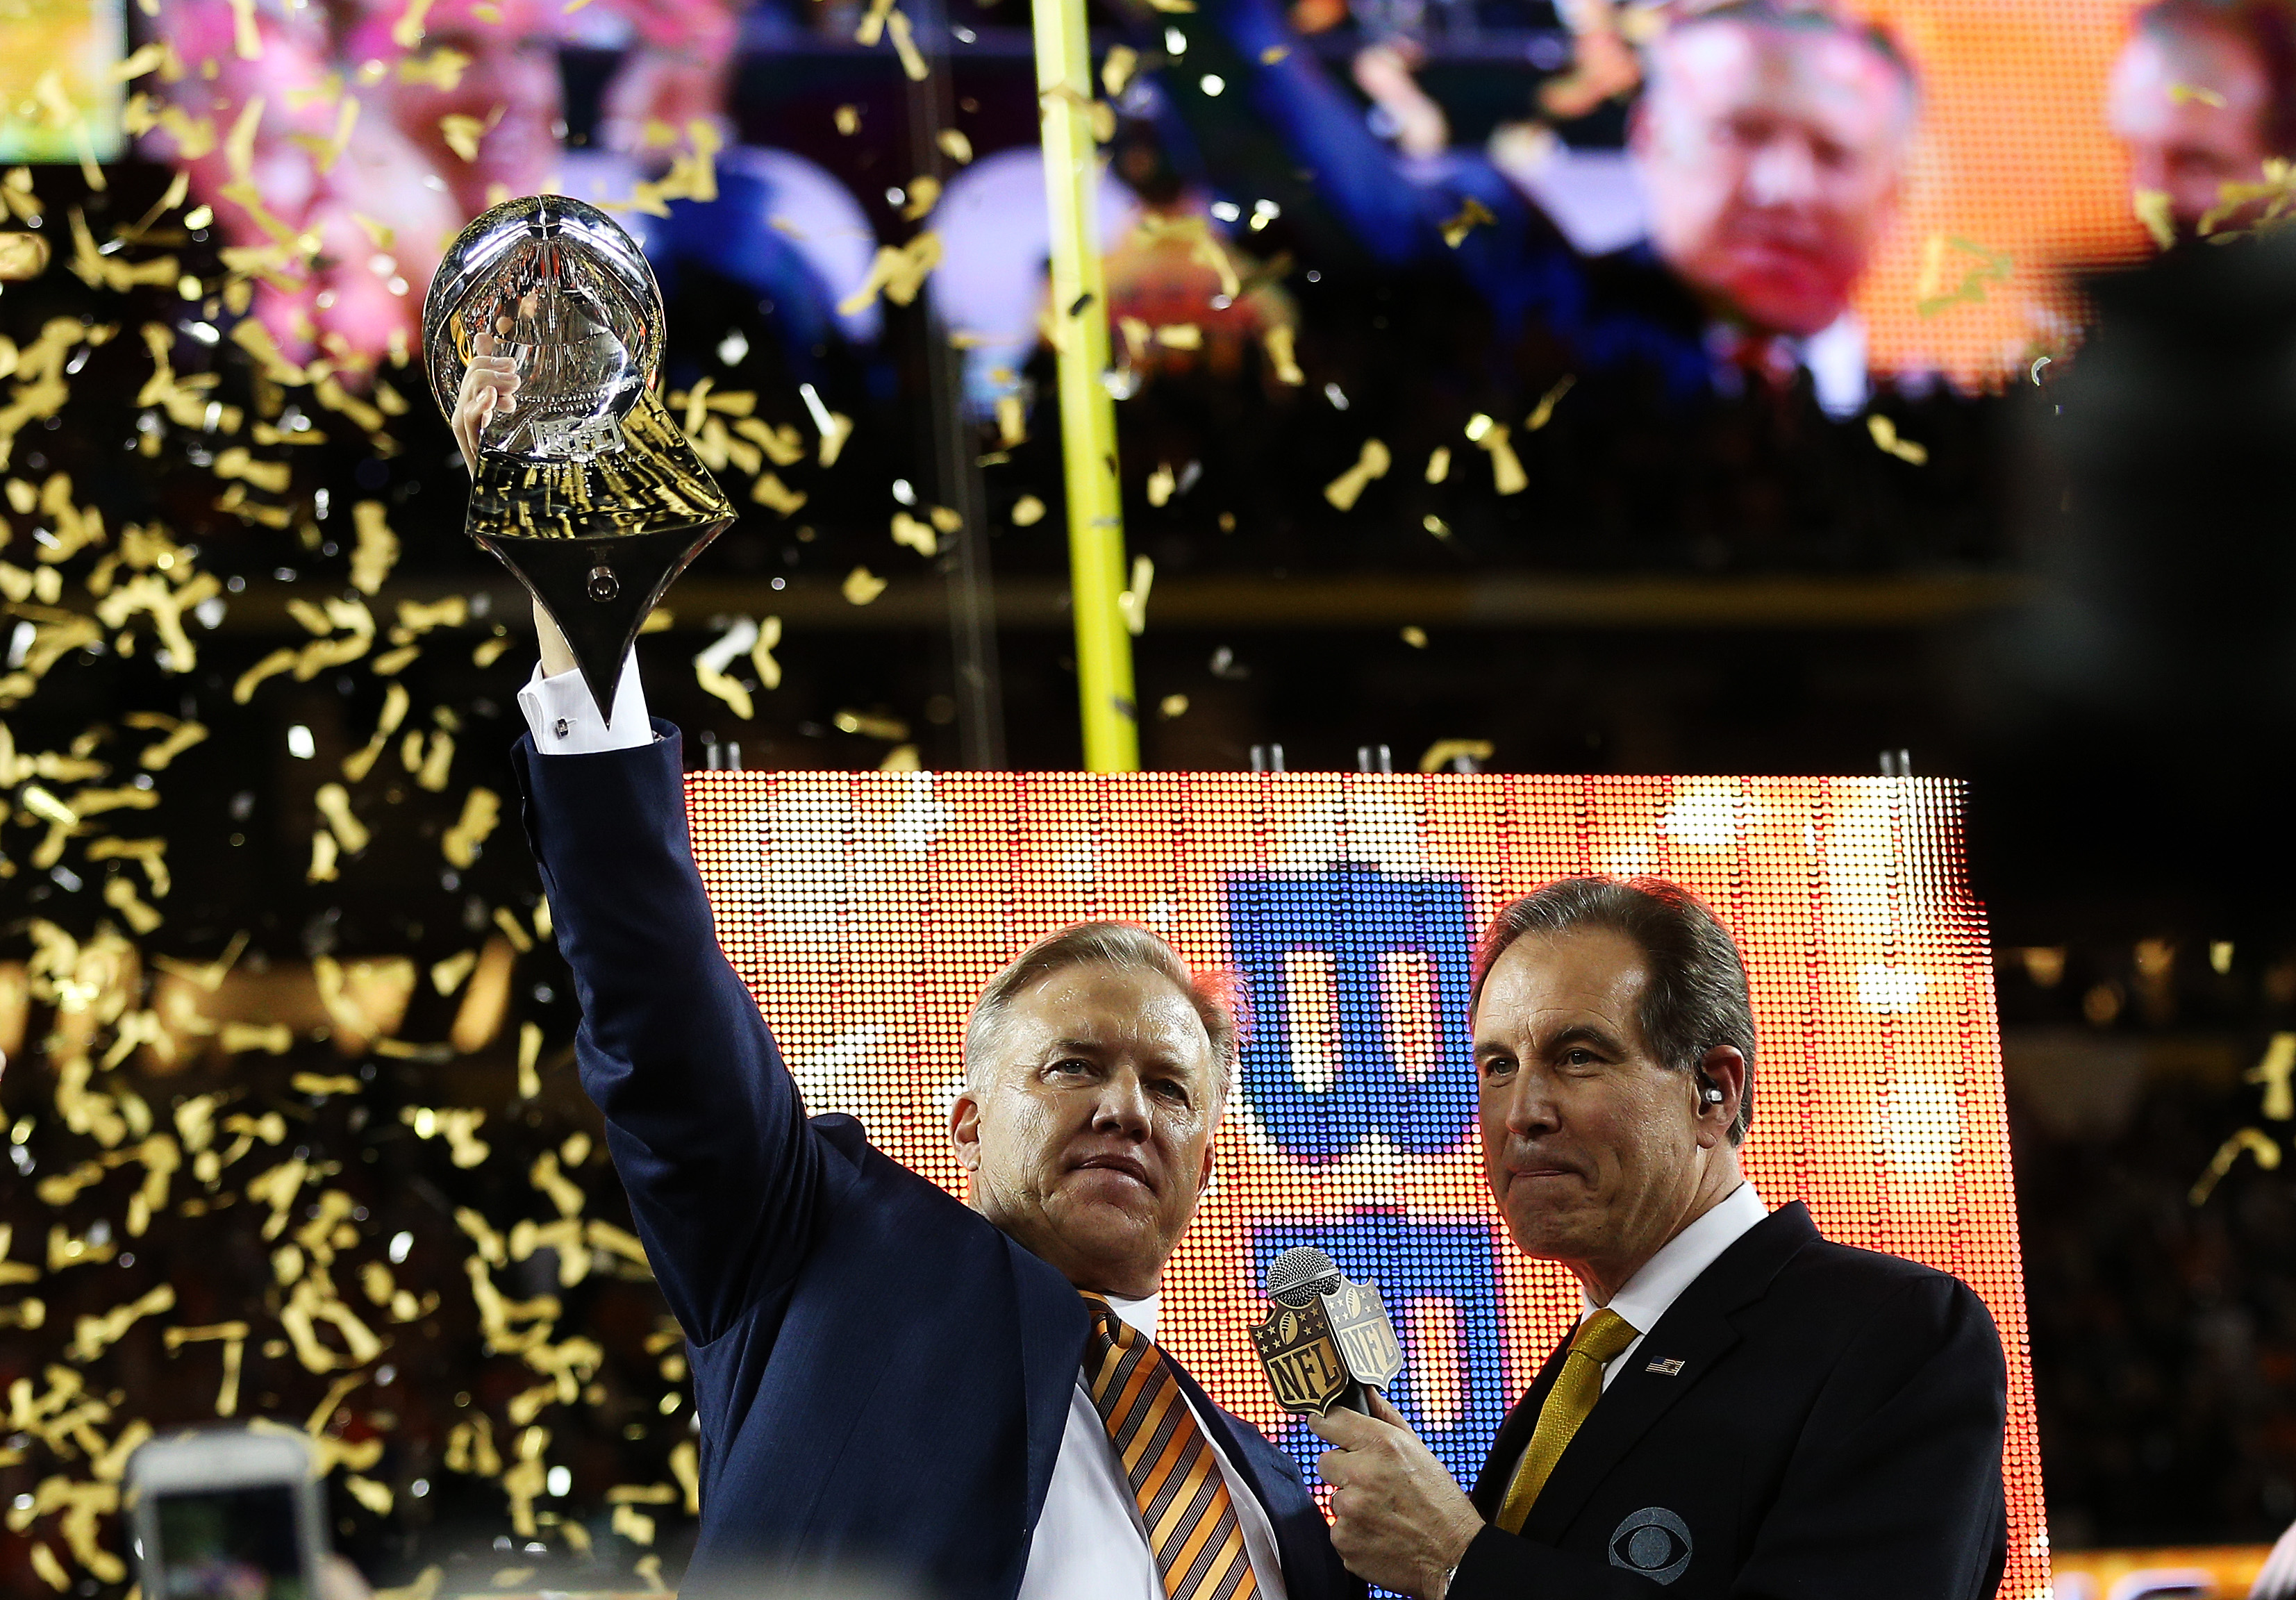 Denver Broncos general manager John Elway holds up the Vince Lombardi Trophy after defeating the Carolina Panthers during Super Bowl 50 at Levi's Stadium on February 7, 2016 in Santa Clara, California. The Broncos defeated the Panthers 24-10.  (Photo by Patrick Smith/Getty Images)